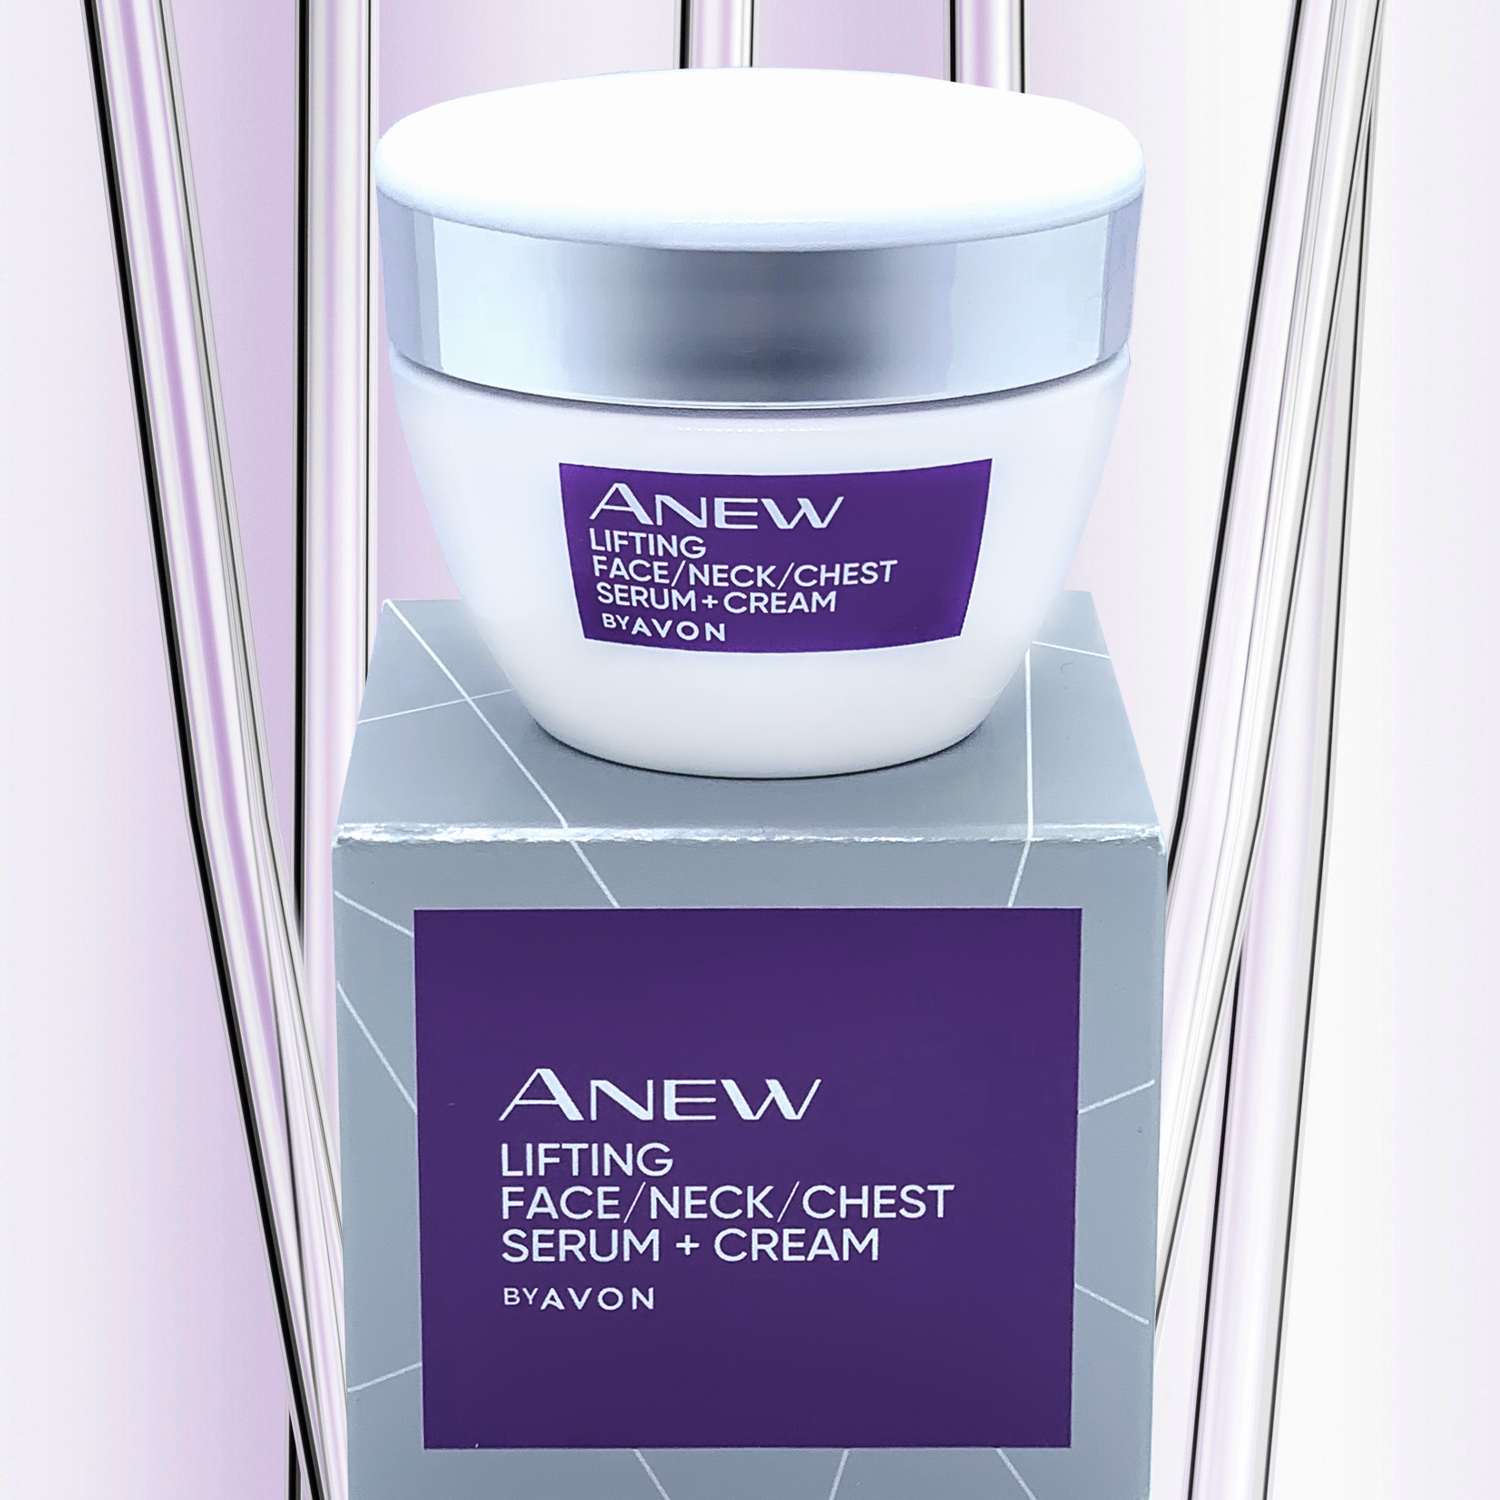 Avon Anew Lifting Face / Neck / Chest Serum + Cream